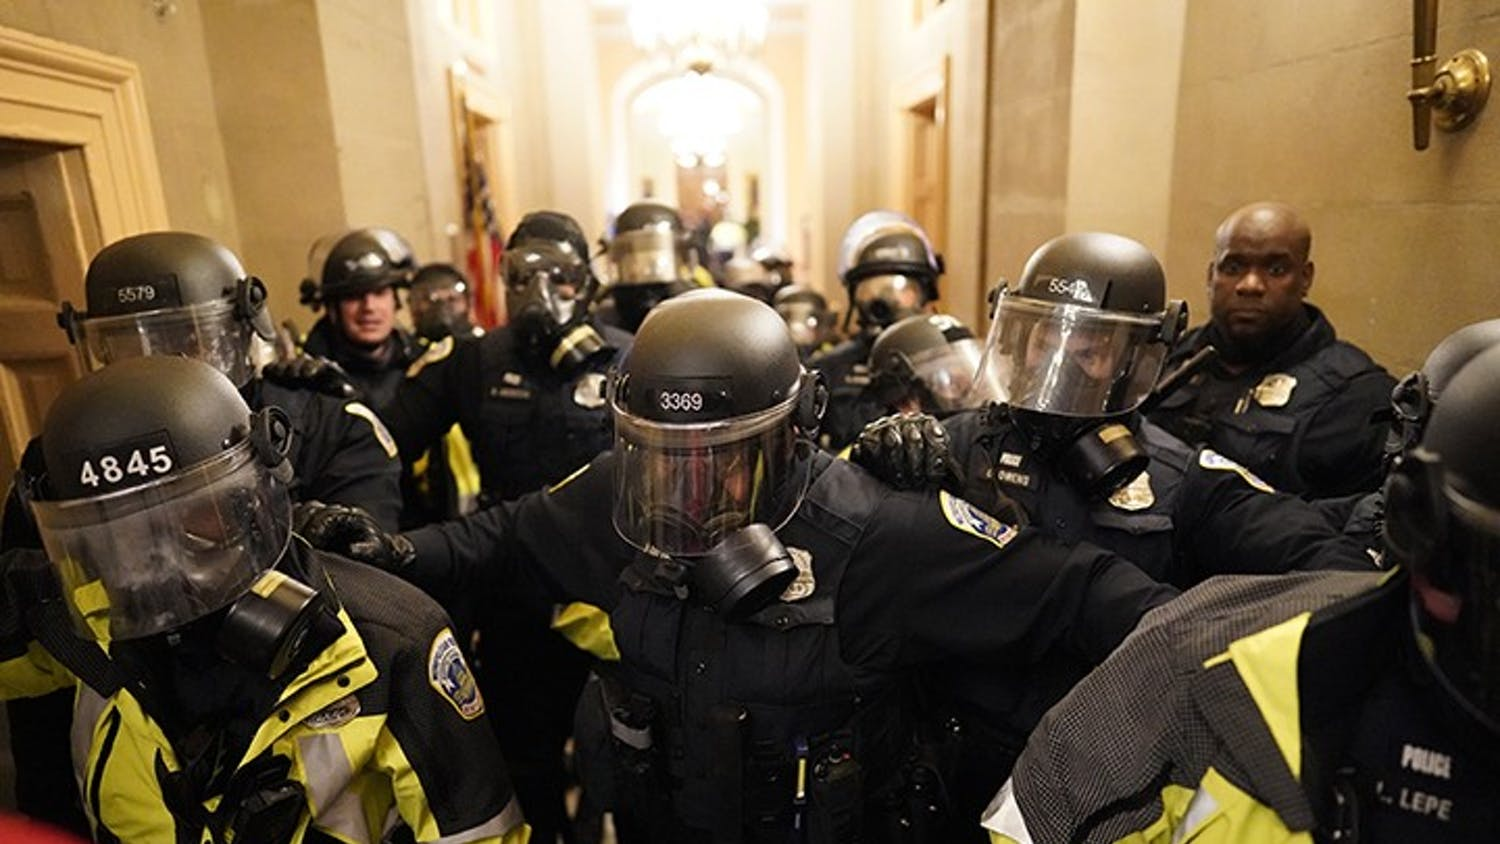 Riot police clear the hallway inside the Capitol on Wednesday, Jan. 6, 2021, in Washington, D.C.